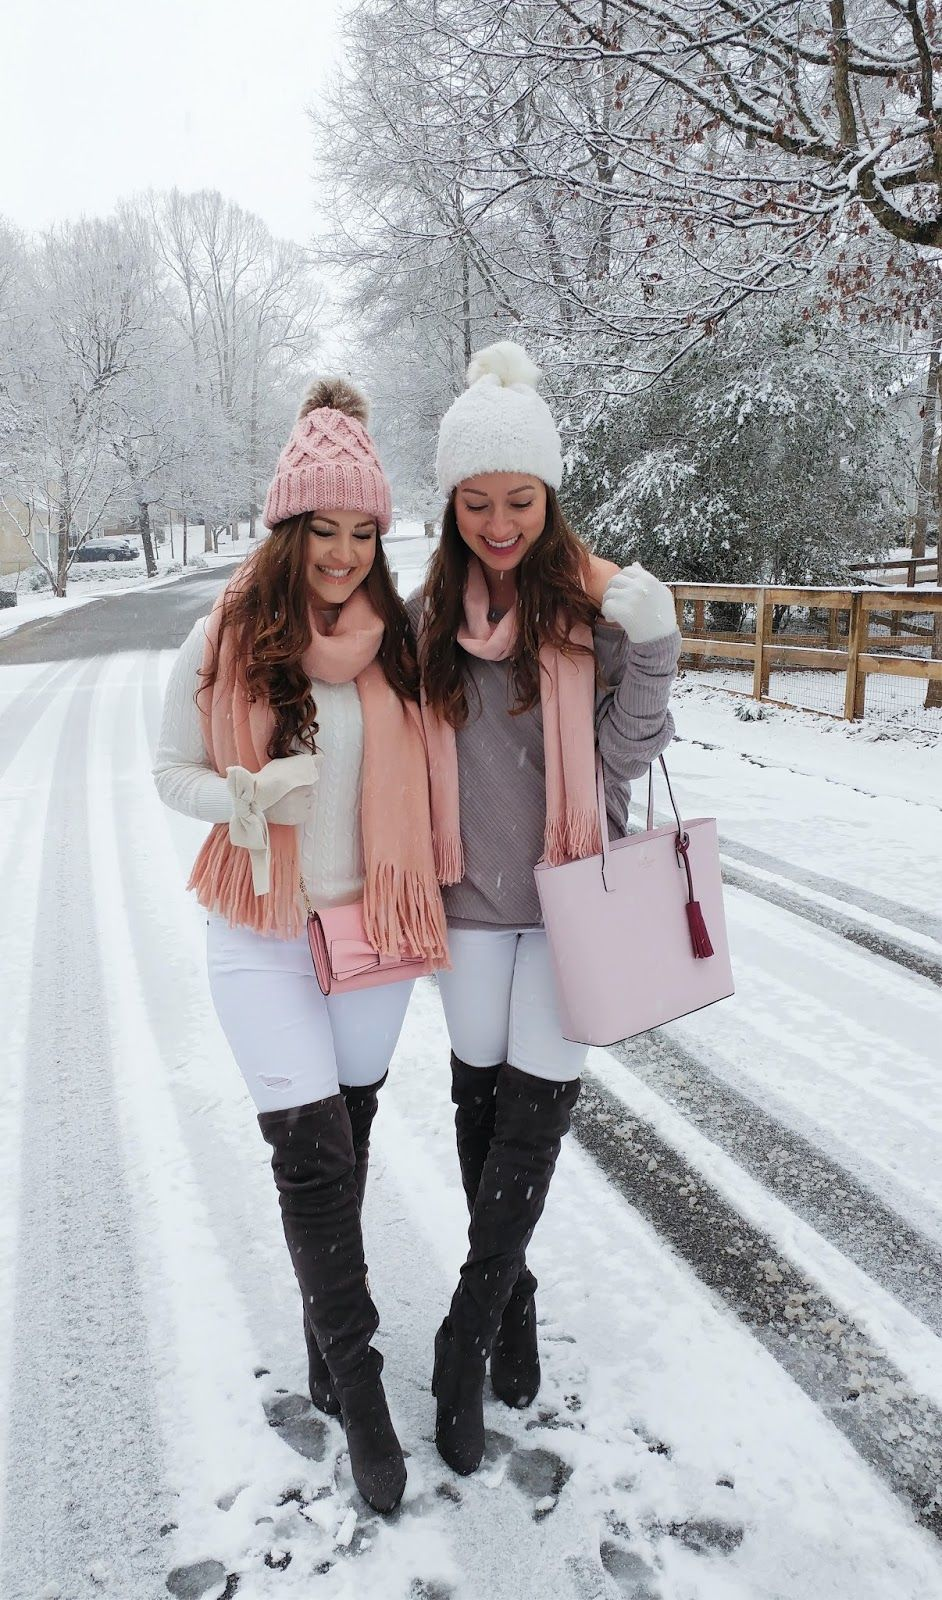 Snow Day | Winter fashion outfits, Snow day outfit, Winter